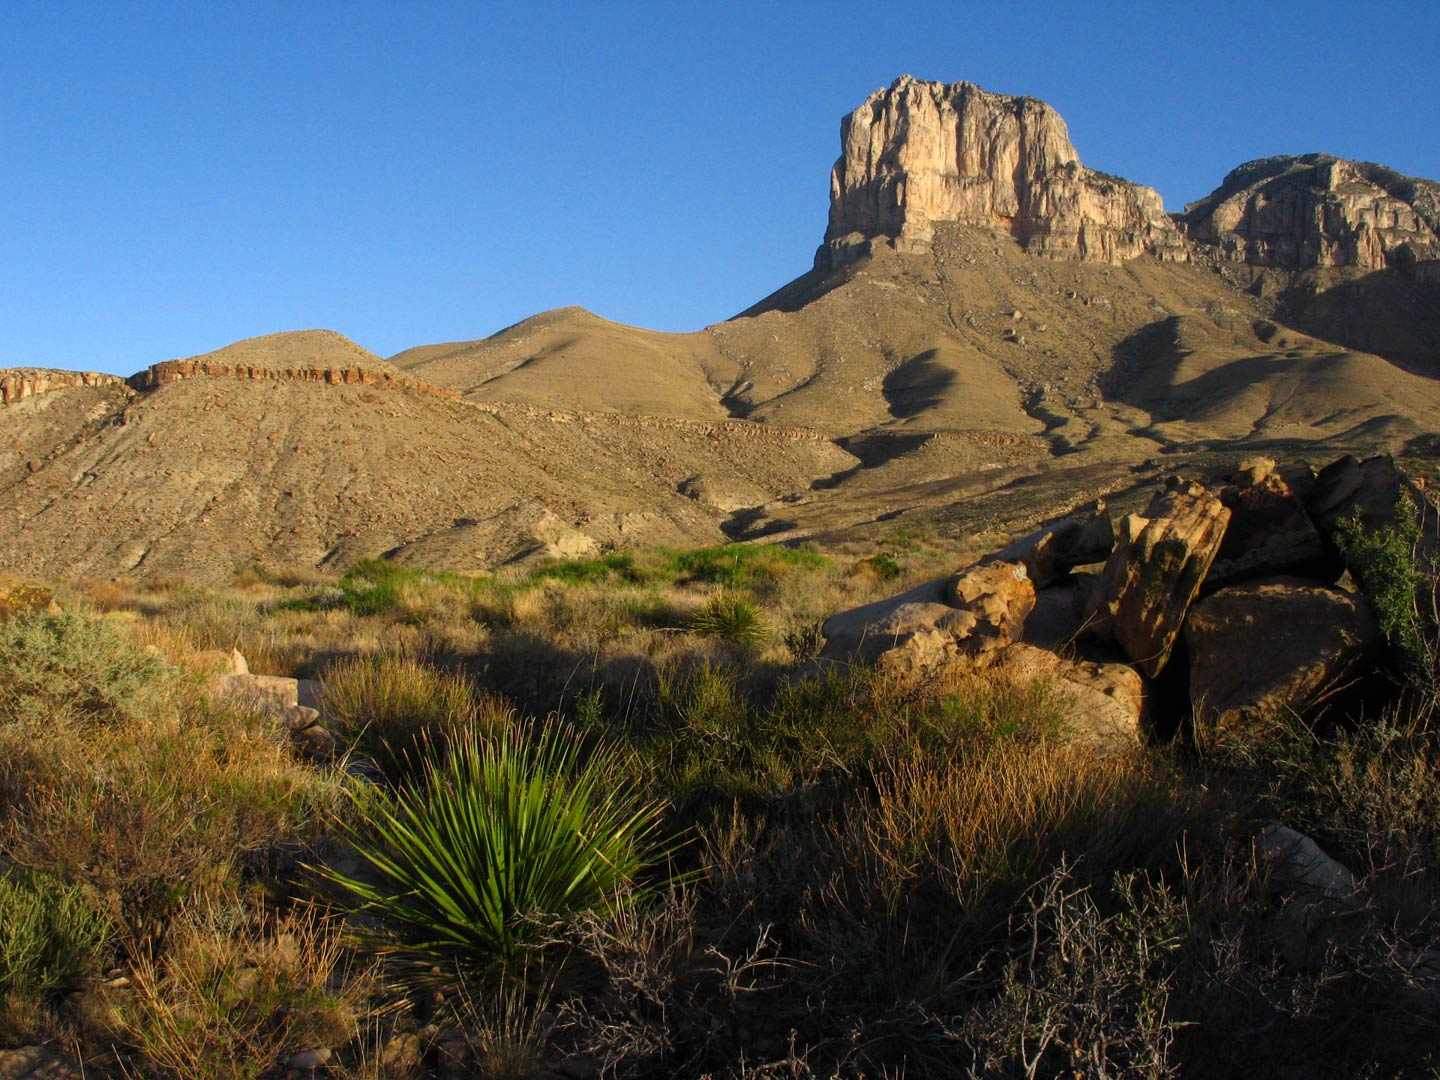 Guadalupe Mountains is one of many national parks in Texas to explore.